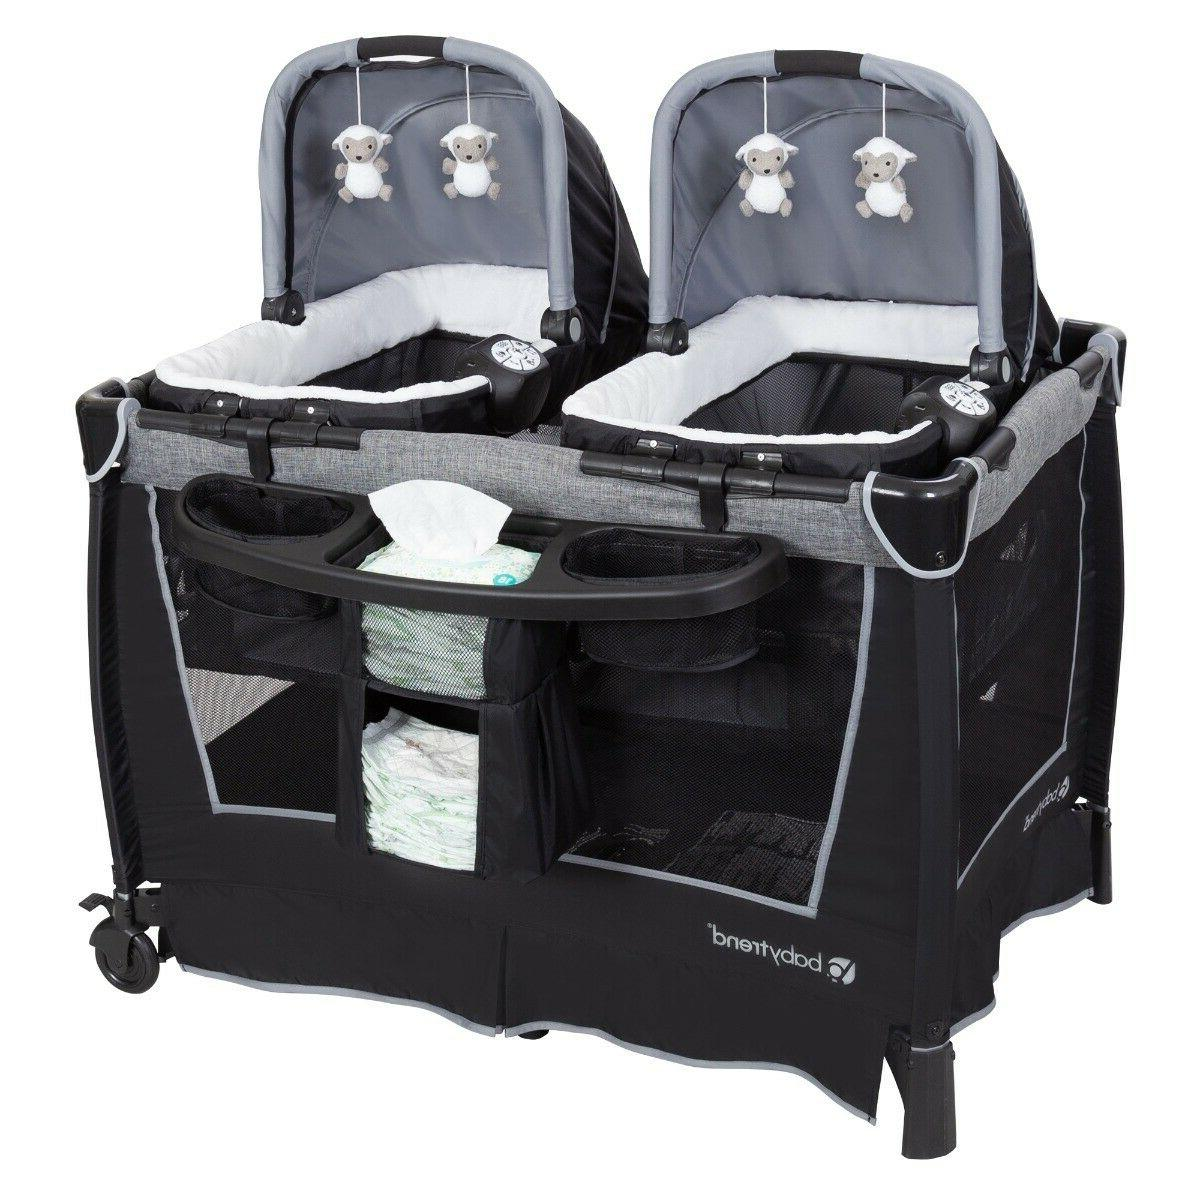 Baby Twins Double Stroller Nursery Center Seat Bag